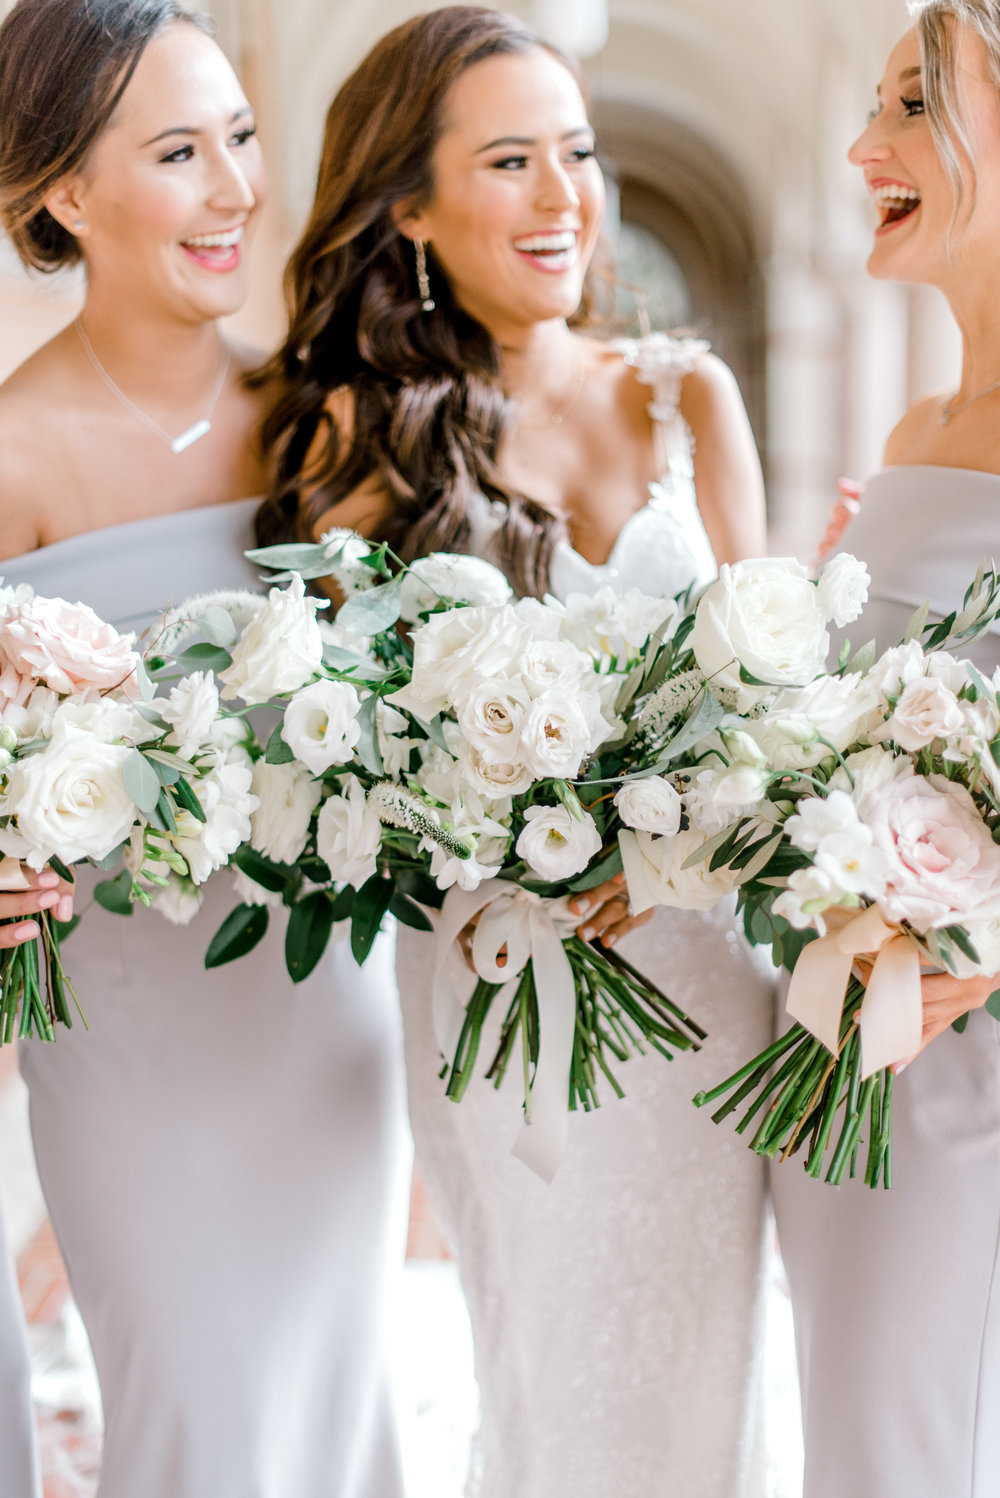 Bride and bridesmaids bouquets. Shot by Josh and Dana Fernandez in Rive University.